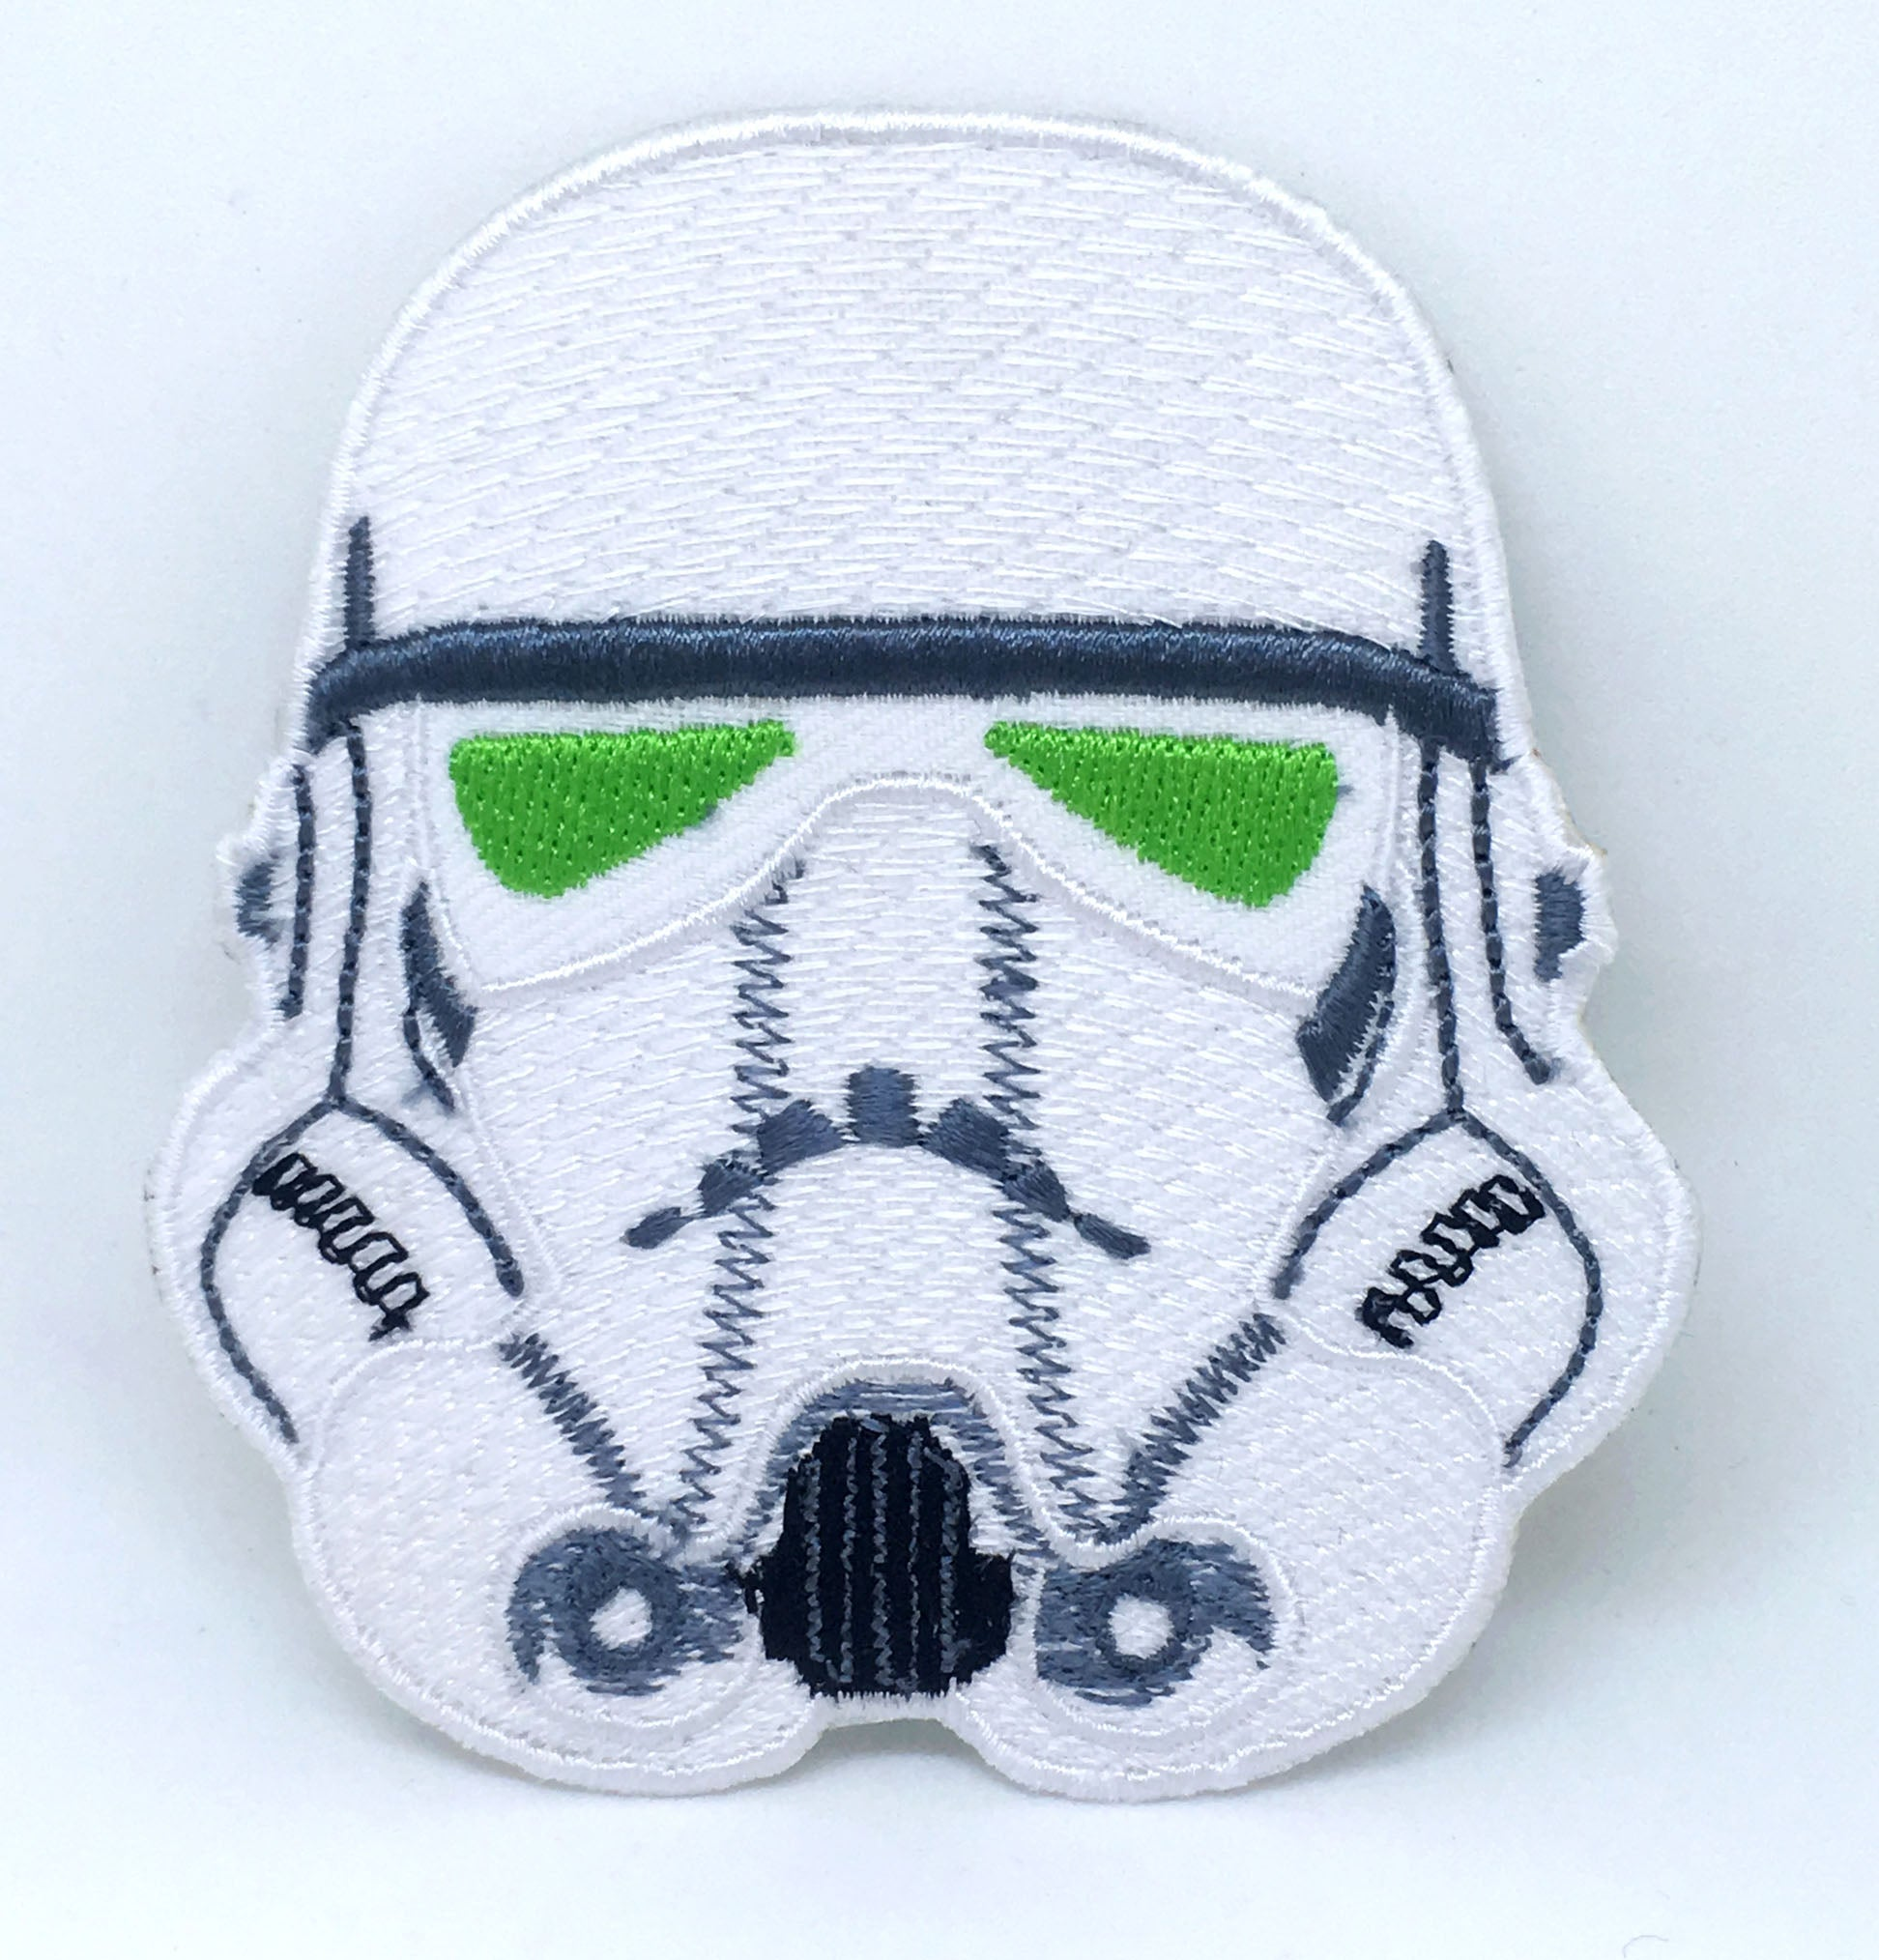 STAR WARS Movies Iron or Sew on Embroidered Patches - Imperial Storm Trooper white